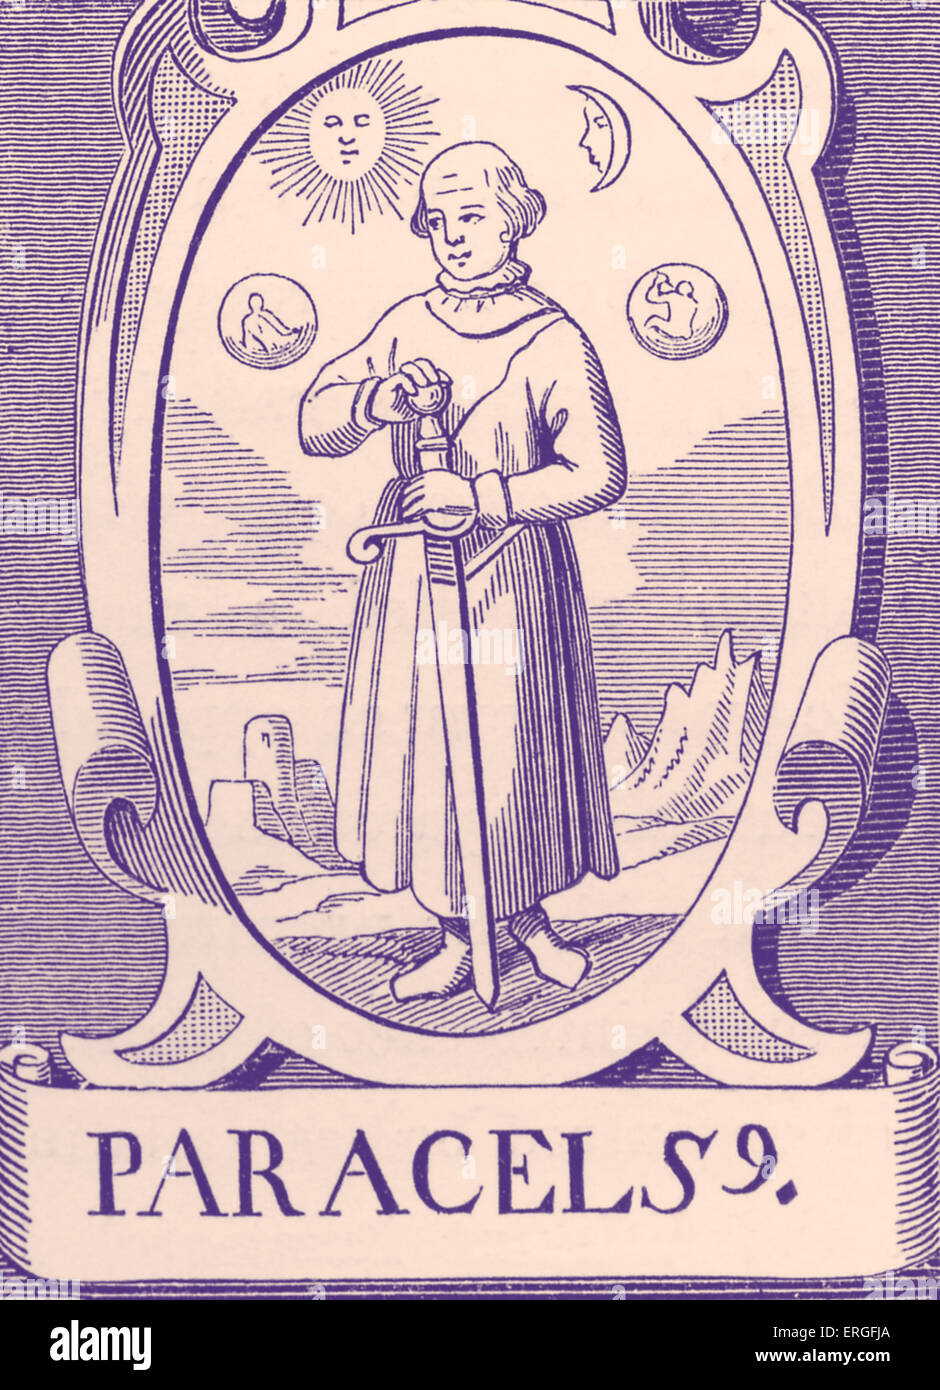 The Alchemist Paraclesus - after engraving by Vriese. - Stock Image